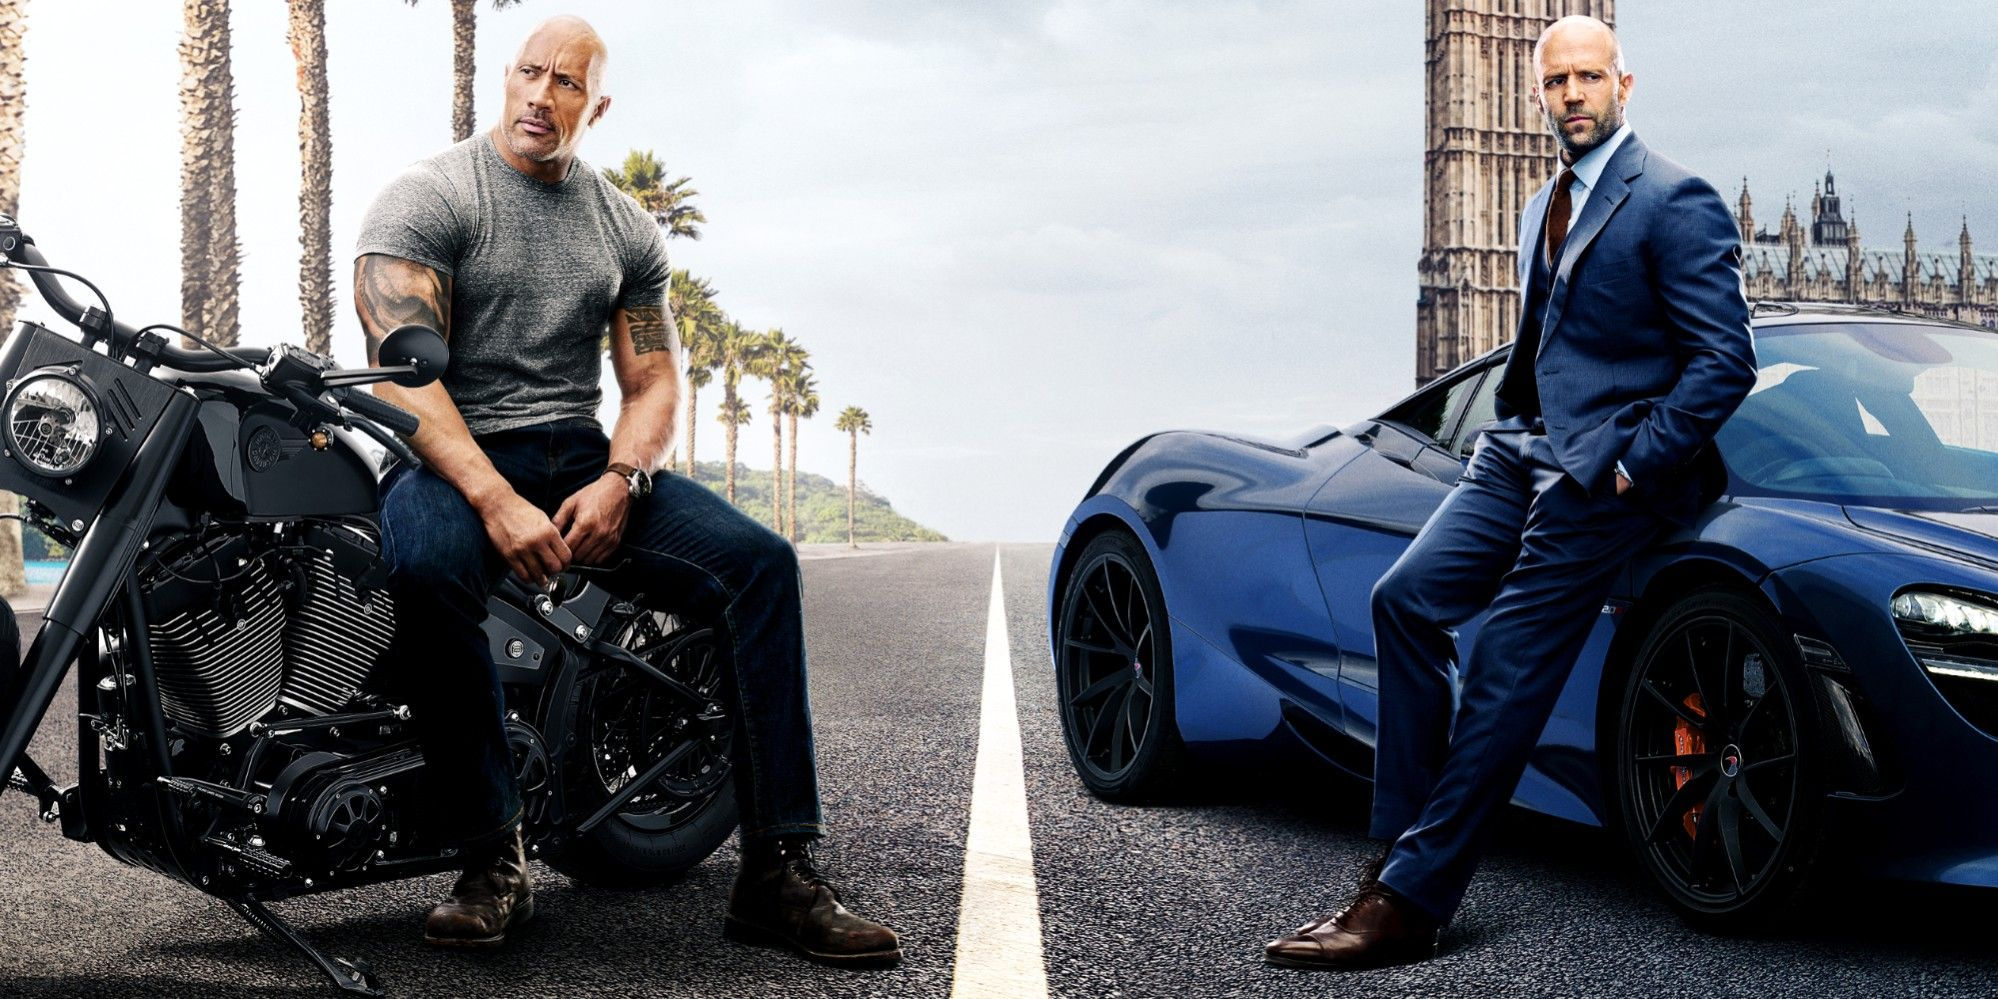 Dwayne Johnson Confirms Hobbs & Shaw Production Has Fully Wrapped